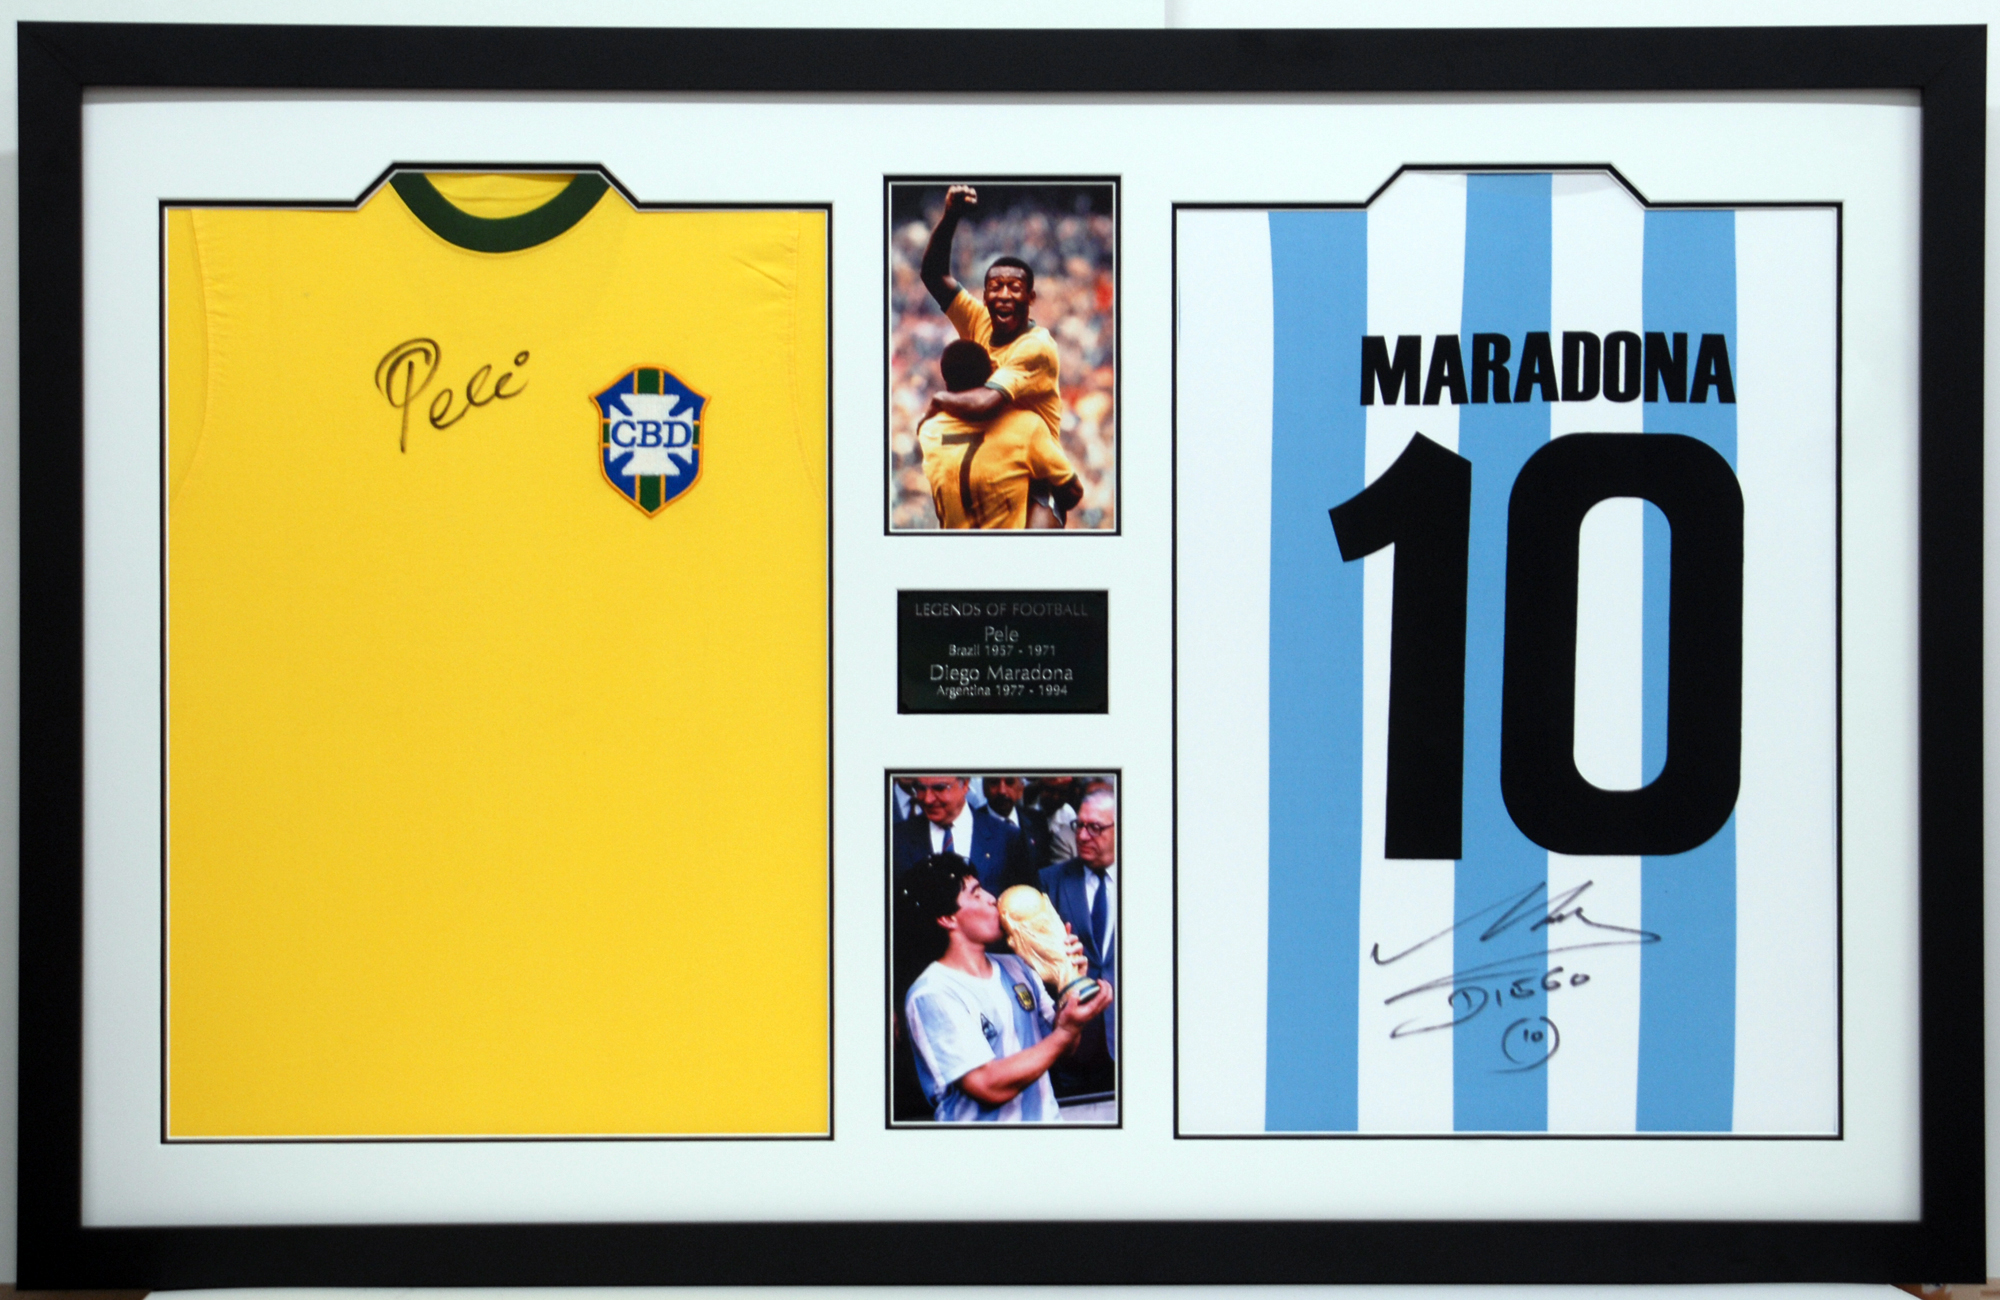 Business gives away signed football shirts from the world's footballing legends